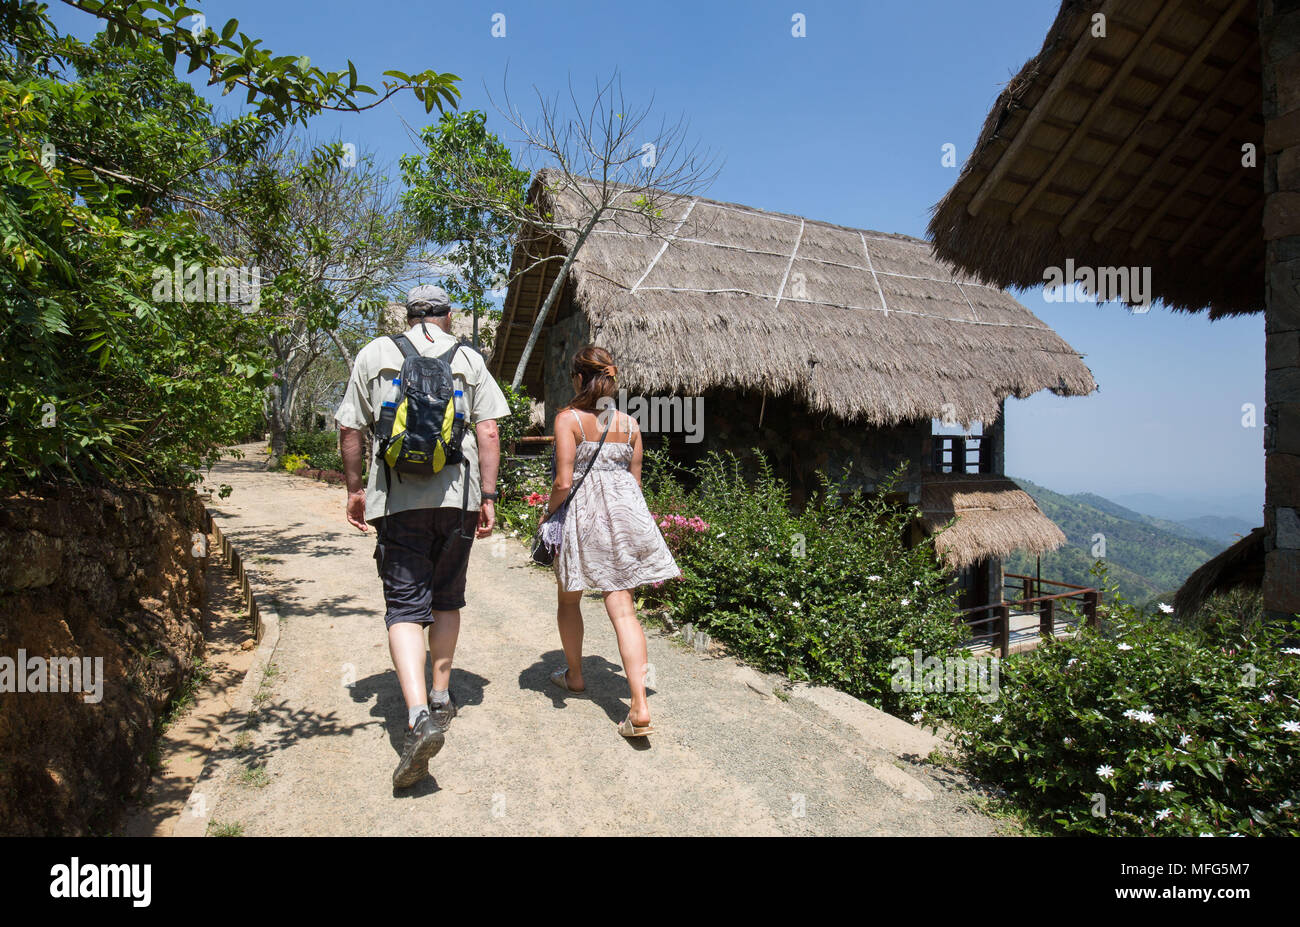 Tourists walking to their lodge in the 98 Acres Resort  and Spa in Ella, Sri Lanka - Stock Image